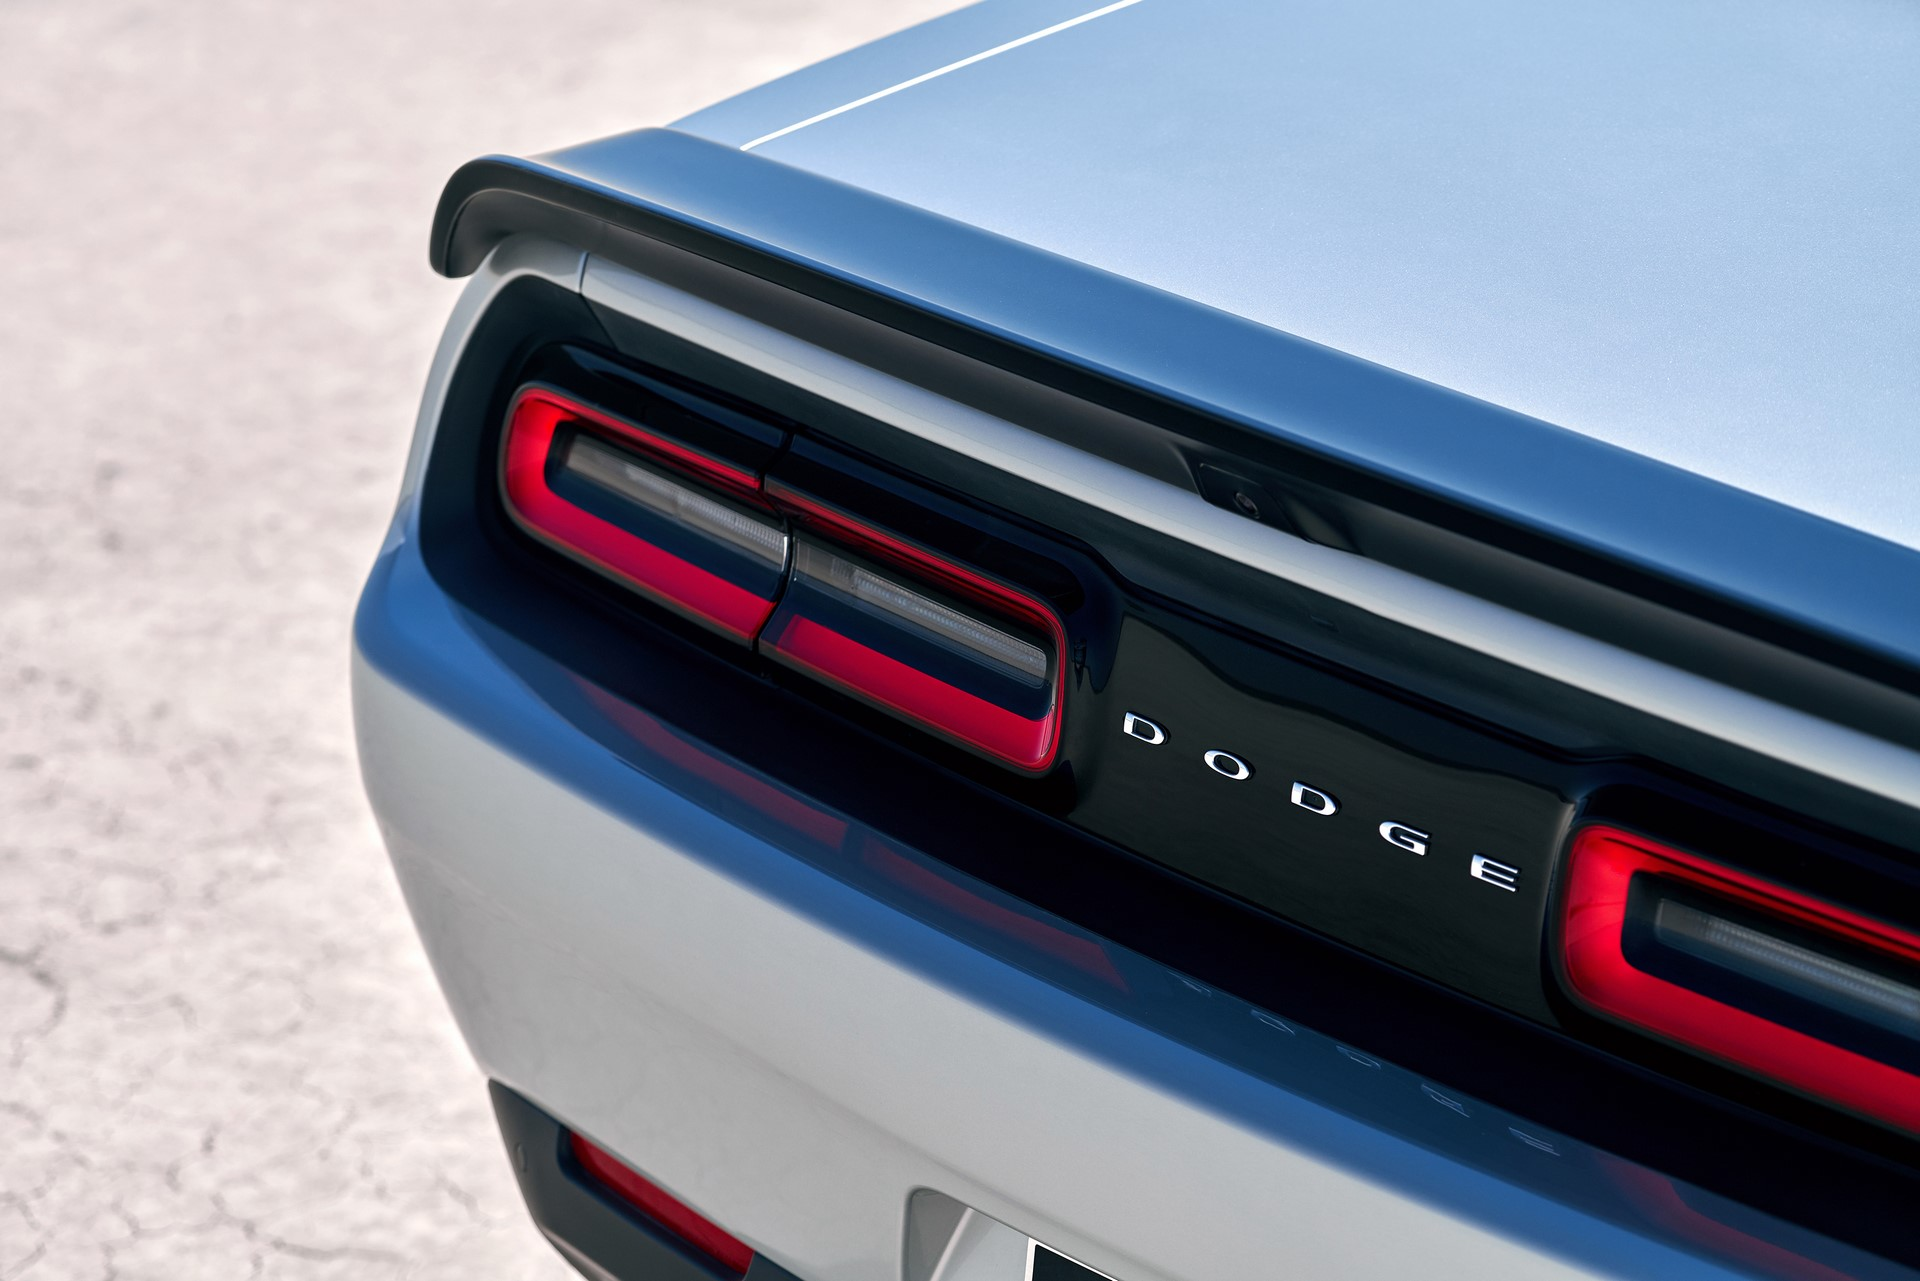 Available new spoiler offers a more expressive look with its increased width on 2019 Dodge Challenger SRT Hellcat Redeye Widebody